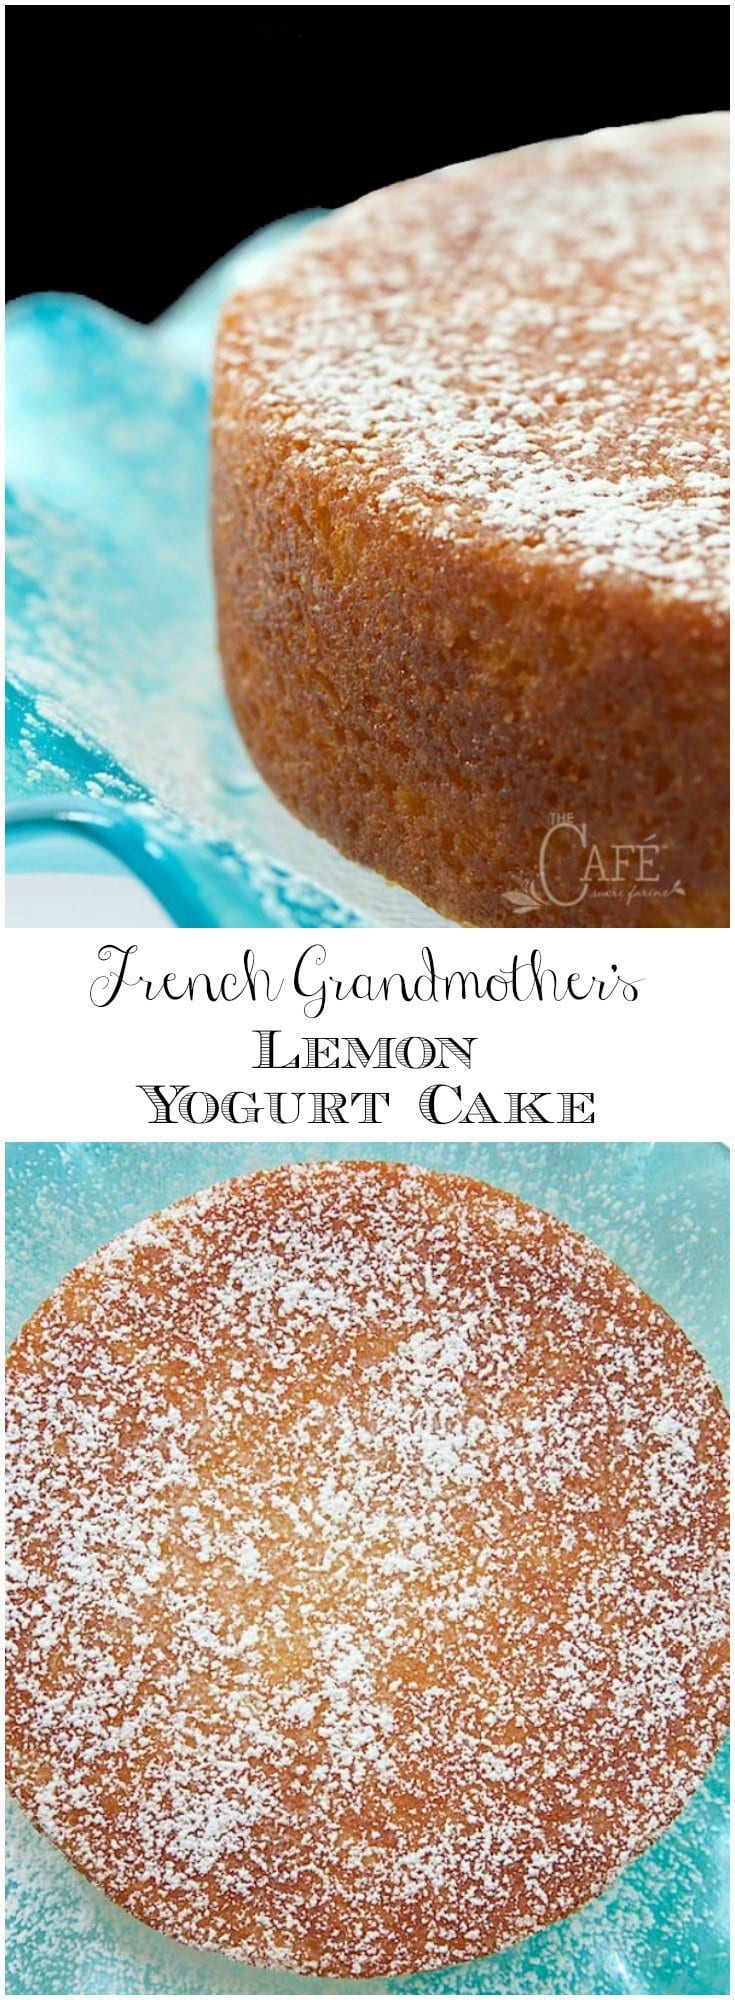 This fabulous French Grandmother\'s Lemon Yogurt Cake has a really fun history. It\'s also moist, super delicious and can be thrown together in minutes! #easylemoncake, #frenchlemoncake, #yogurtcake, #onebowlcake